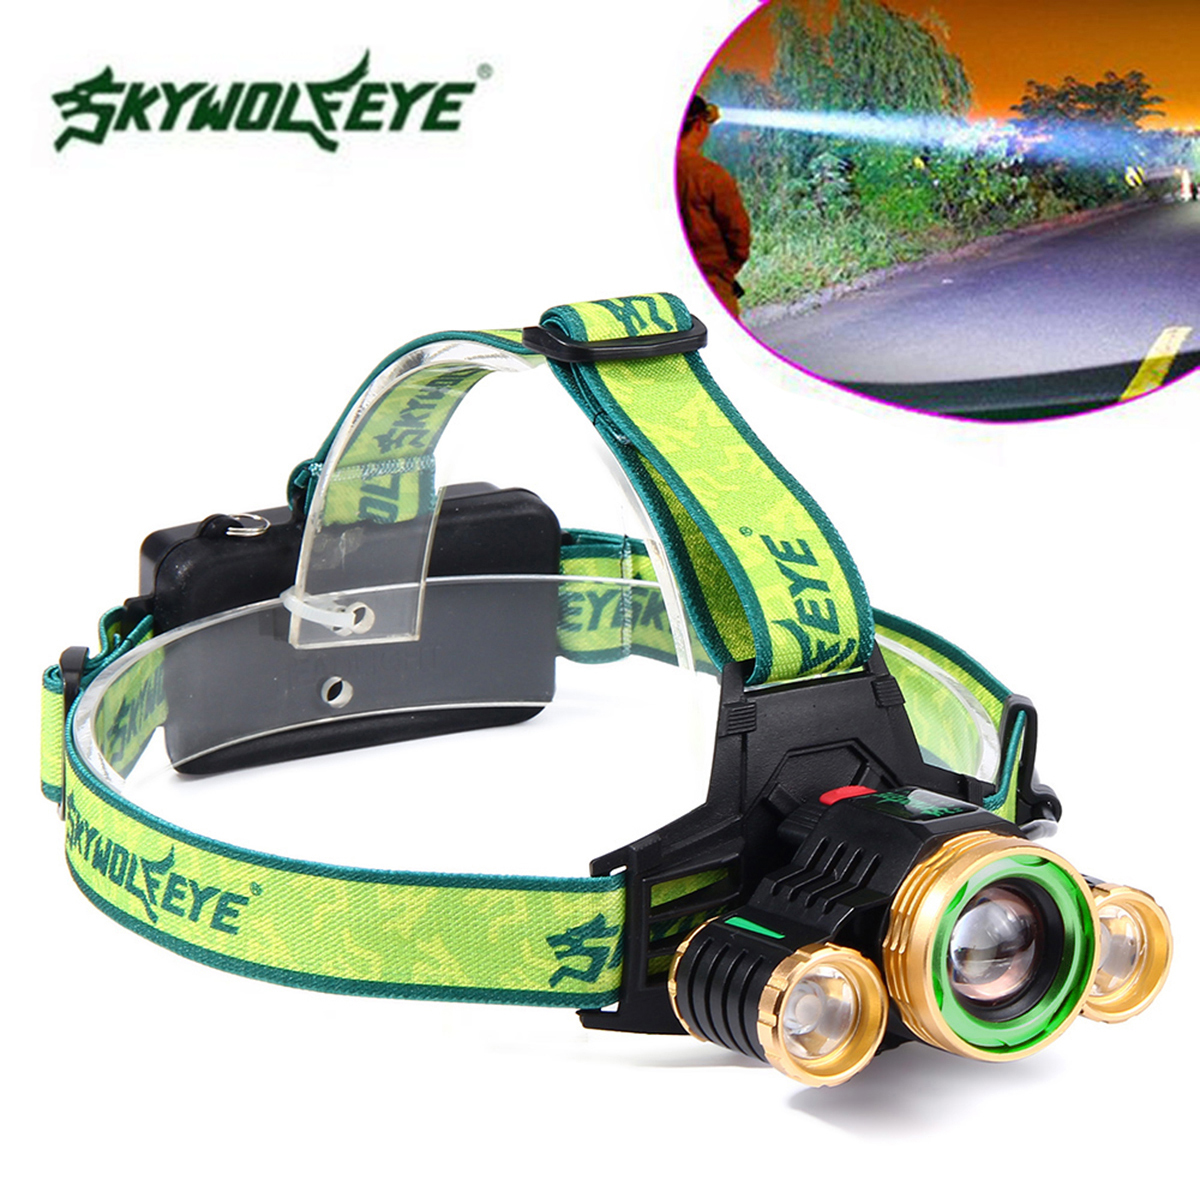 Ikvvt 30000lm Led Headlamp Flashlight Headlight Rechargeable Head Lm2575 Simple Switcher 1a Step Down Voltage Regulator Torch Lamp